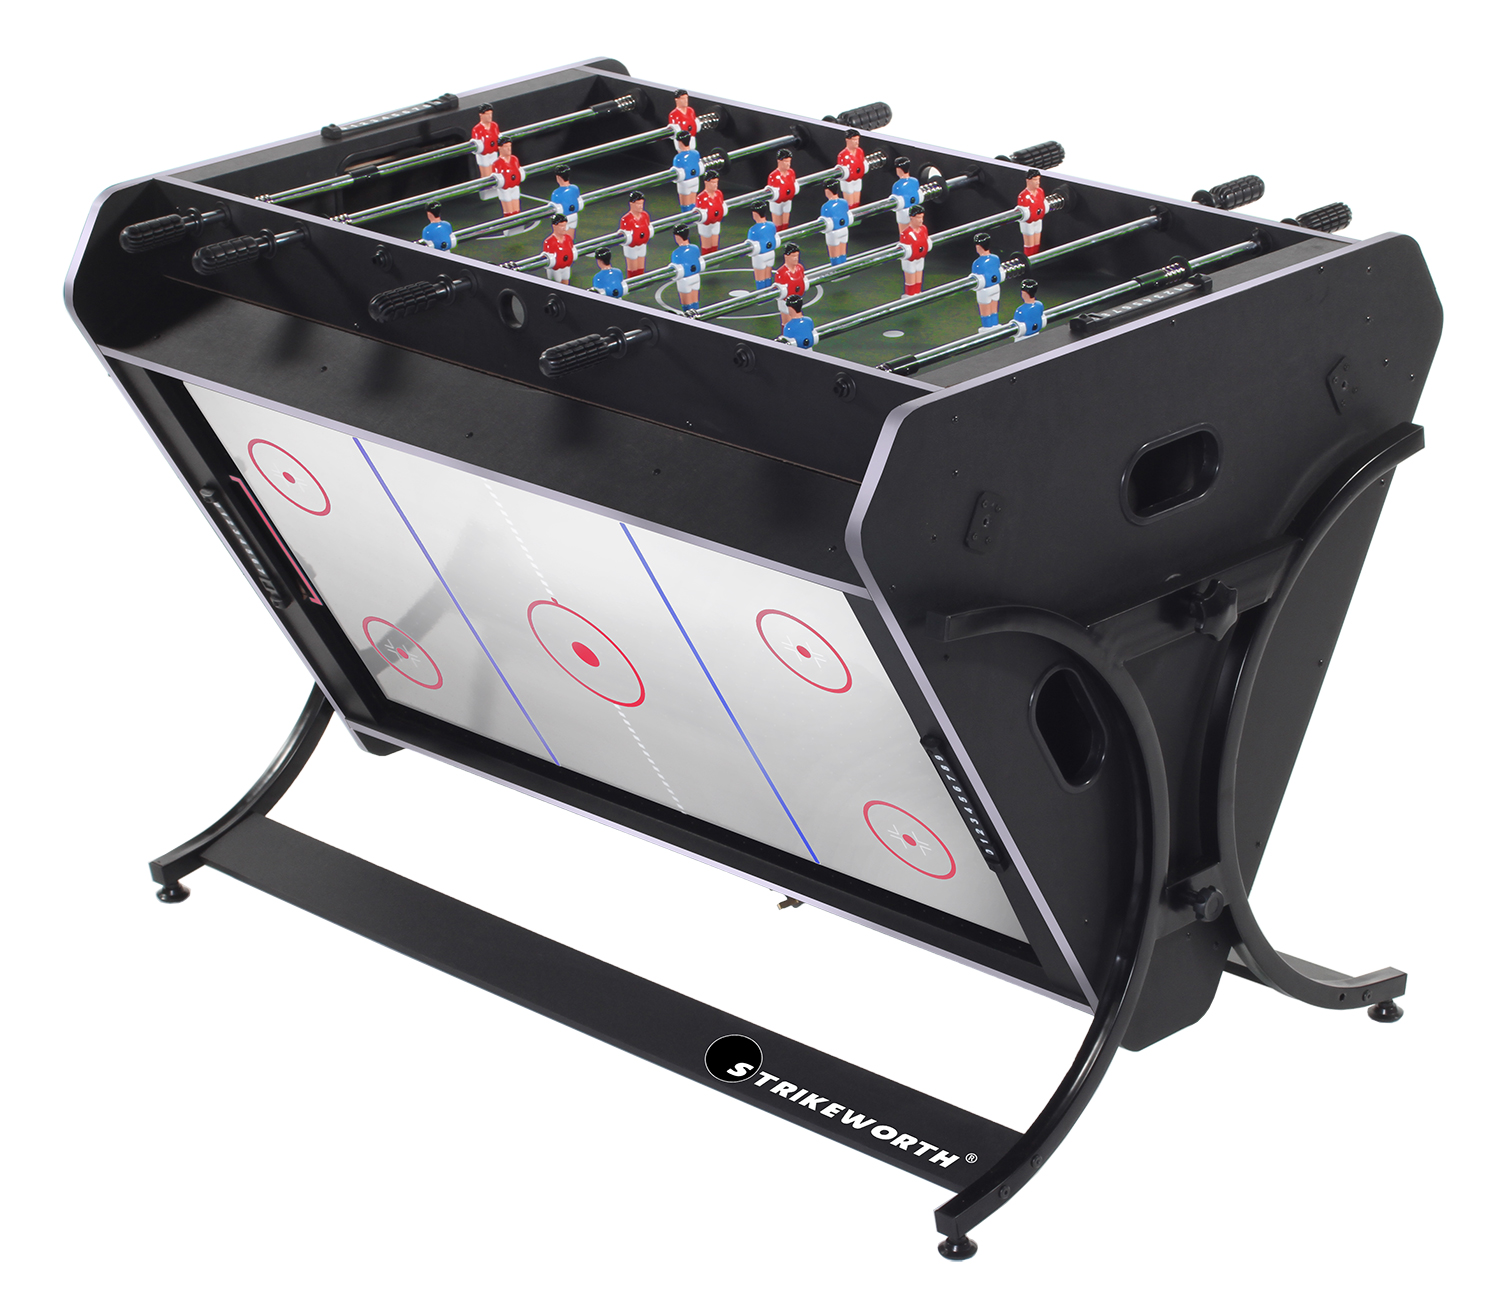 strikeworth trisport multi games table pool air hockey. Black Bedroom Furniture Sets. Home Design Ideas